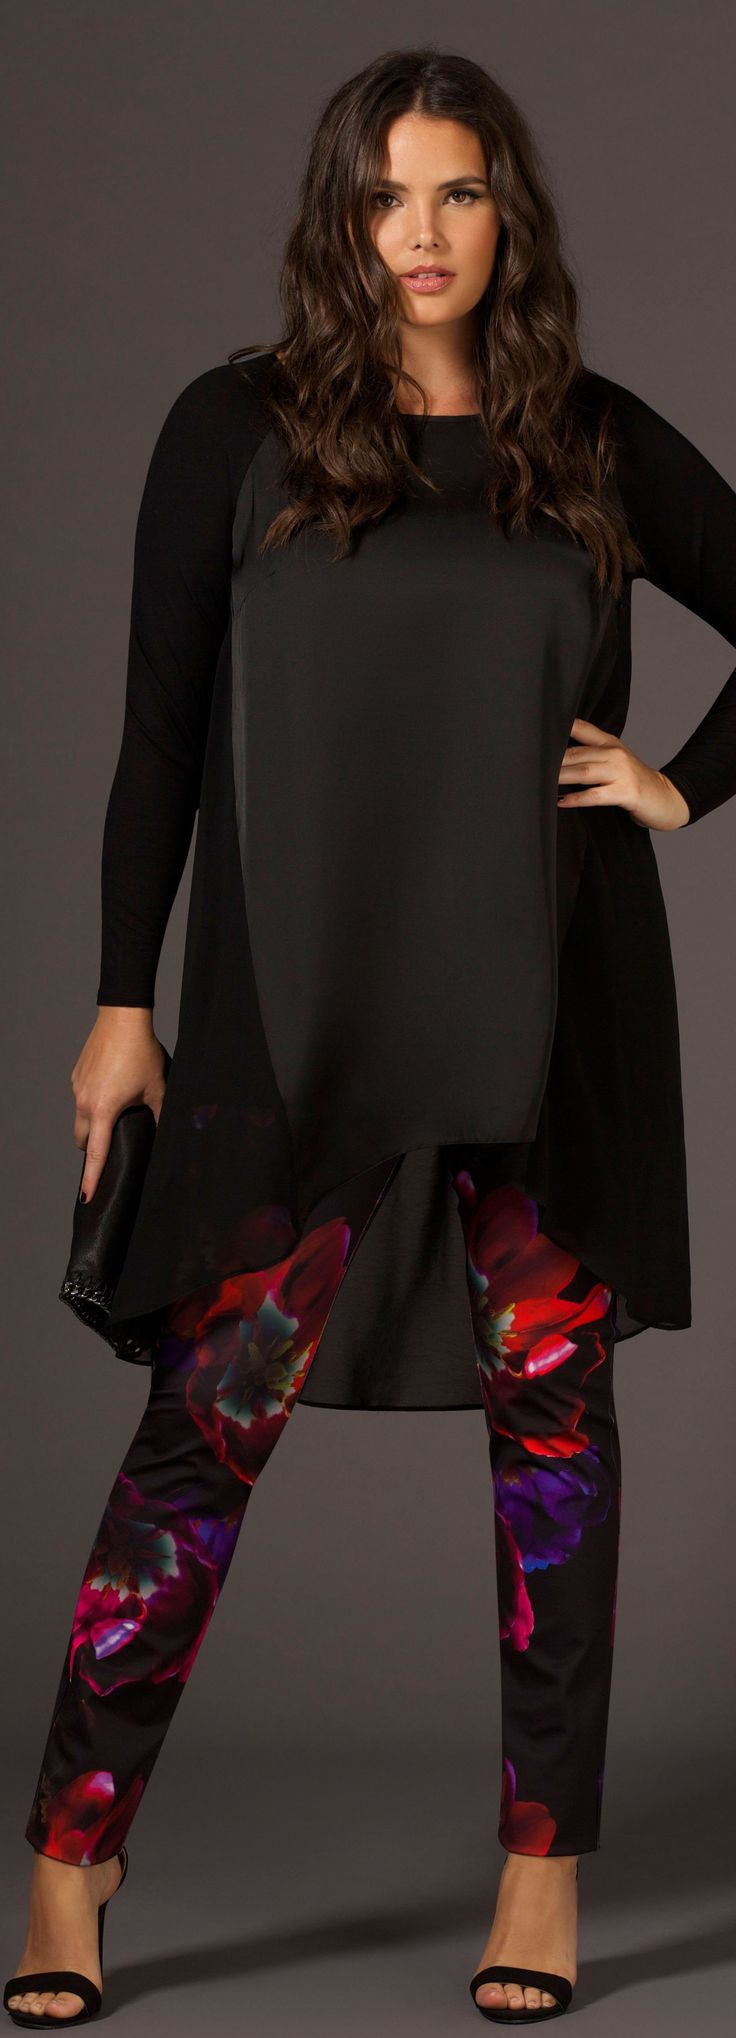 Love this outfit. http://www.boomerinas.com/2014/10/29/trendy-plus-size-clothing-stores-online-29-boutiques-designers-worldwide-with-us-delivery/